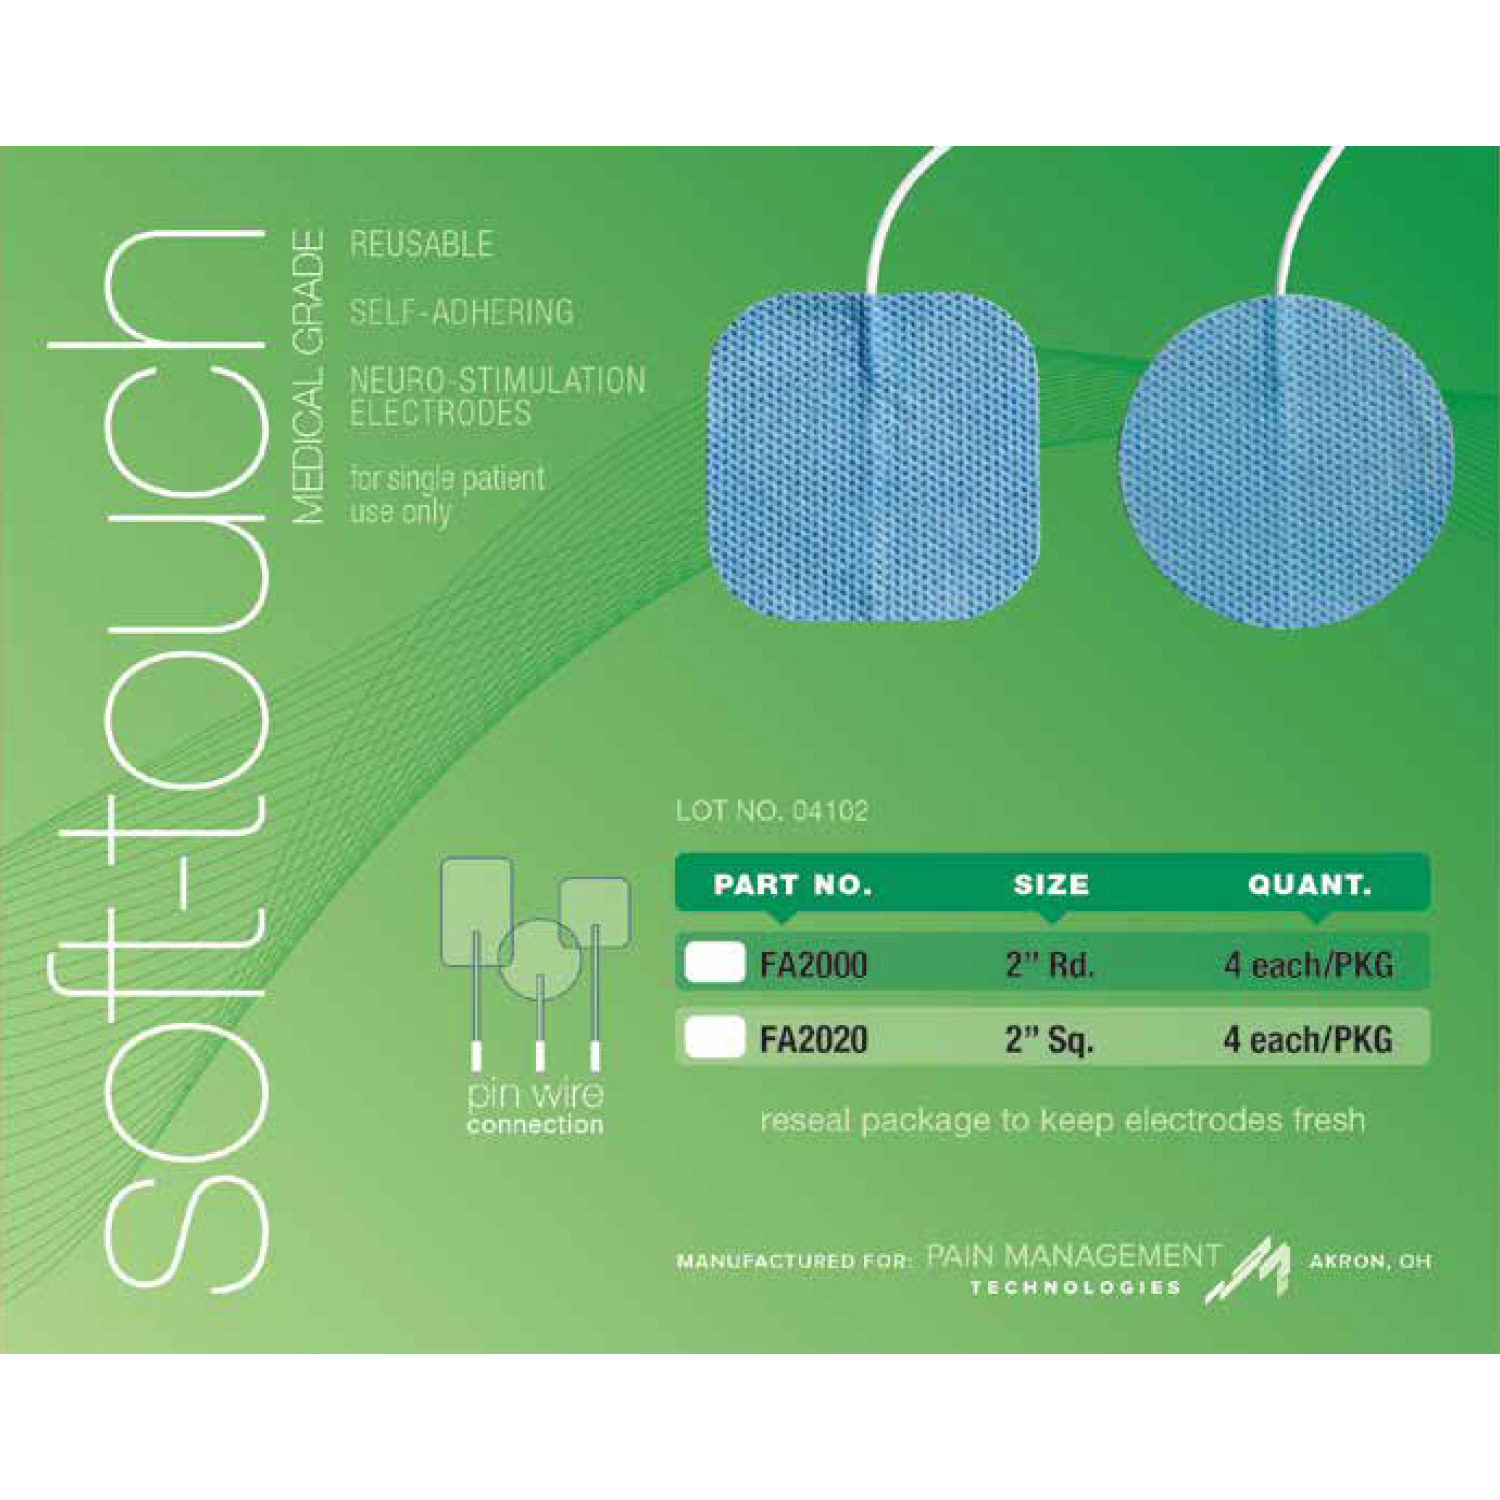 Soft-Touch Medical Grade Electrodes